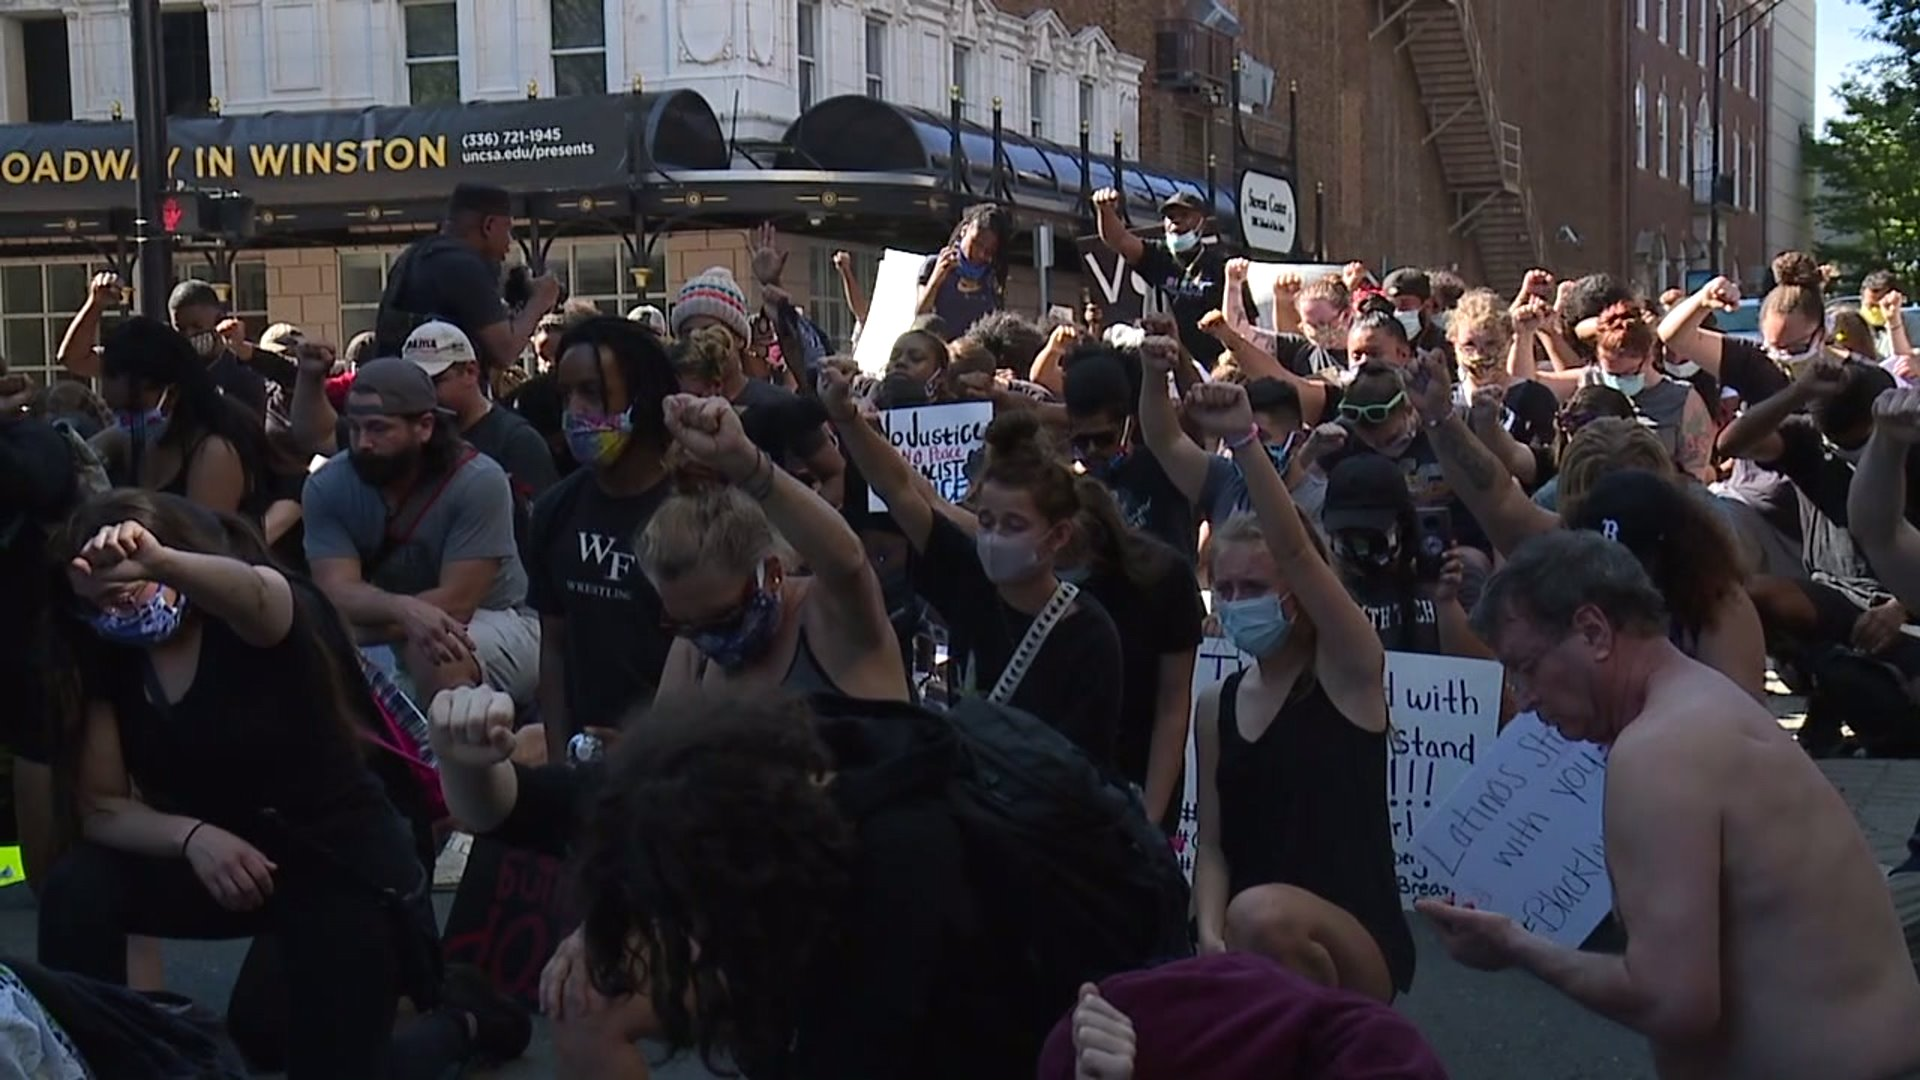 'No justice, no peace': Protestors from all across Winston-Salem demonstrate together